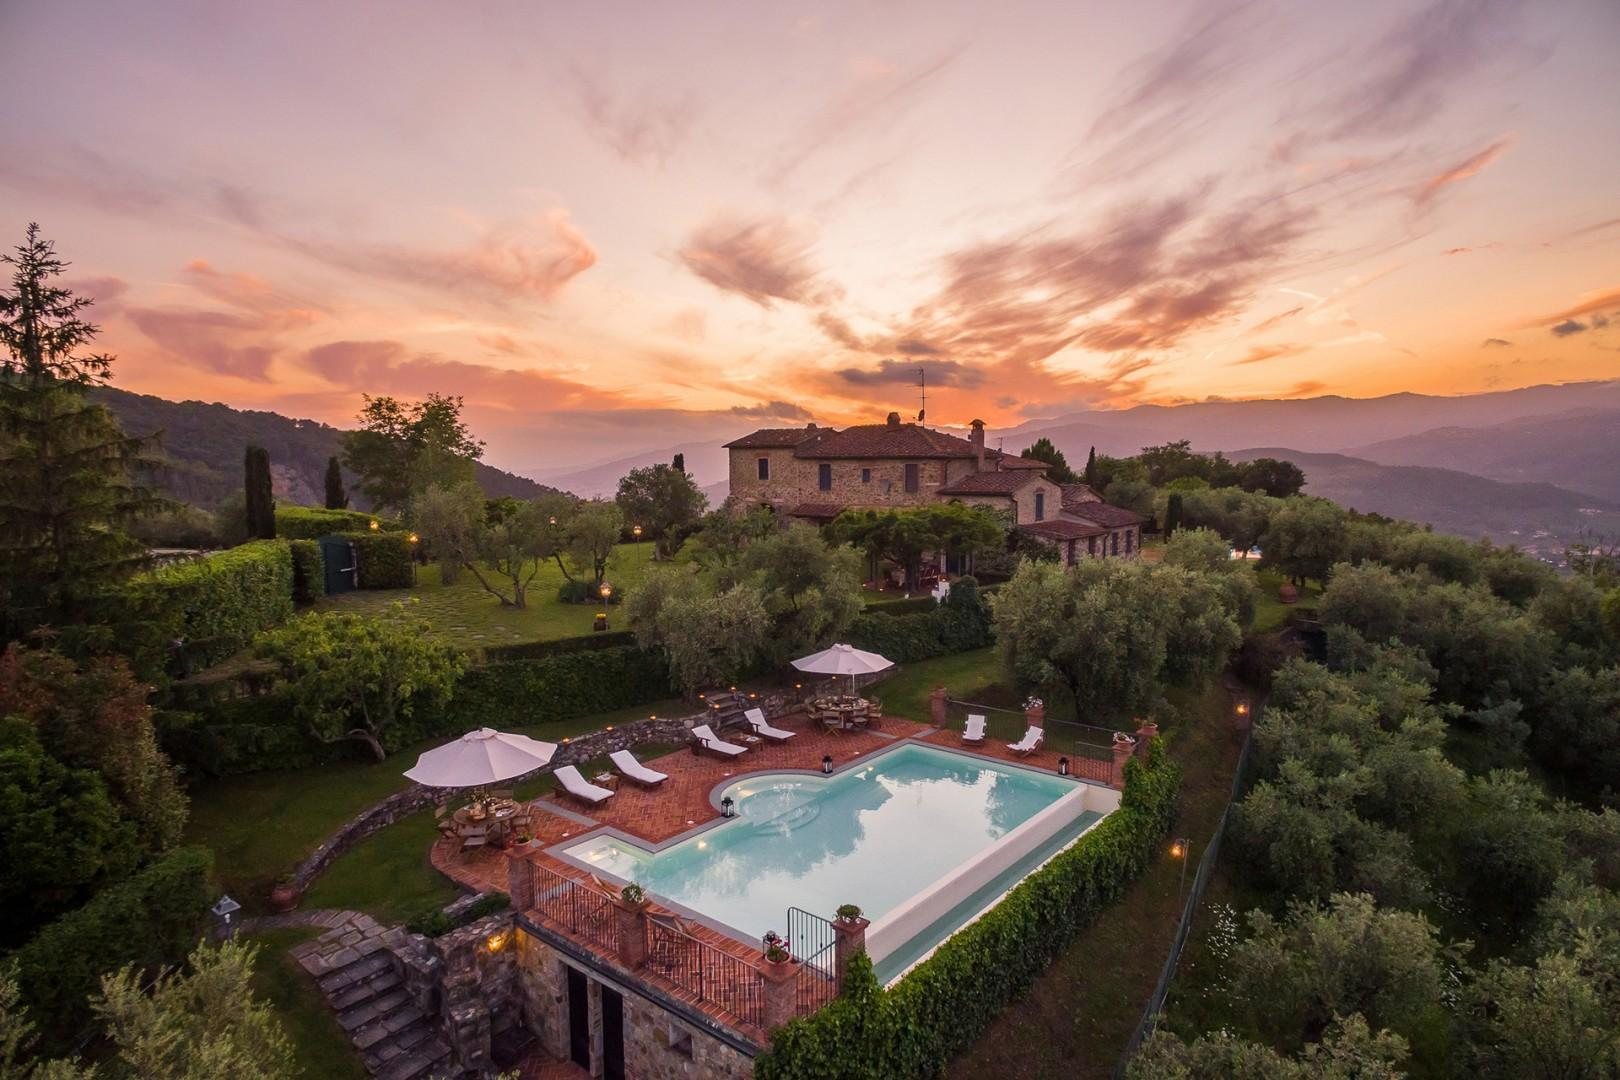 Spectacular views stretching out over the valley overlooking Montecatini Terme.